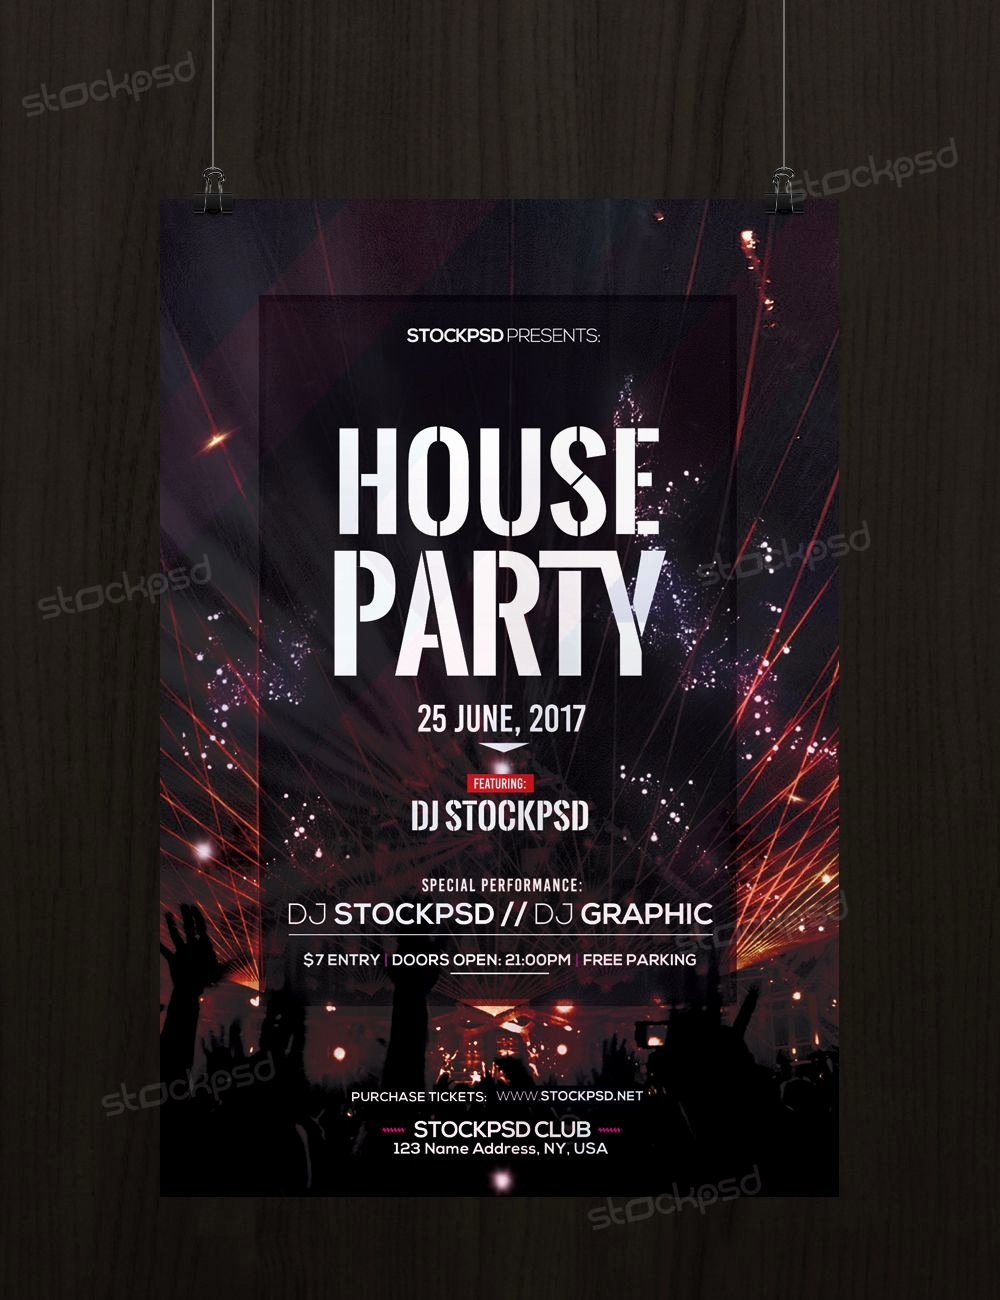 House Party Flyer Template Fresh House Party – Download Free Psd Flyer Template